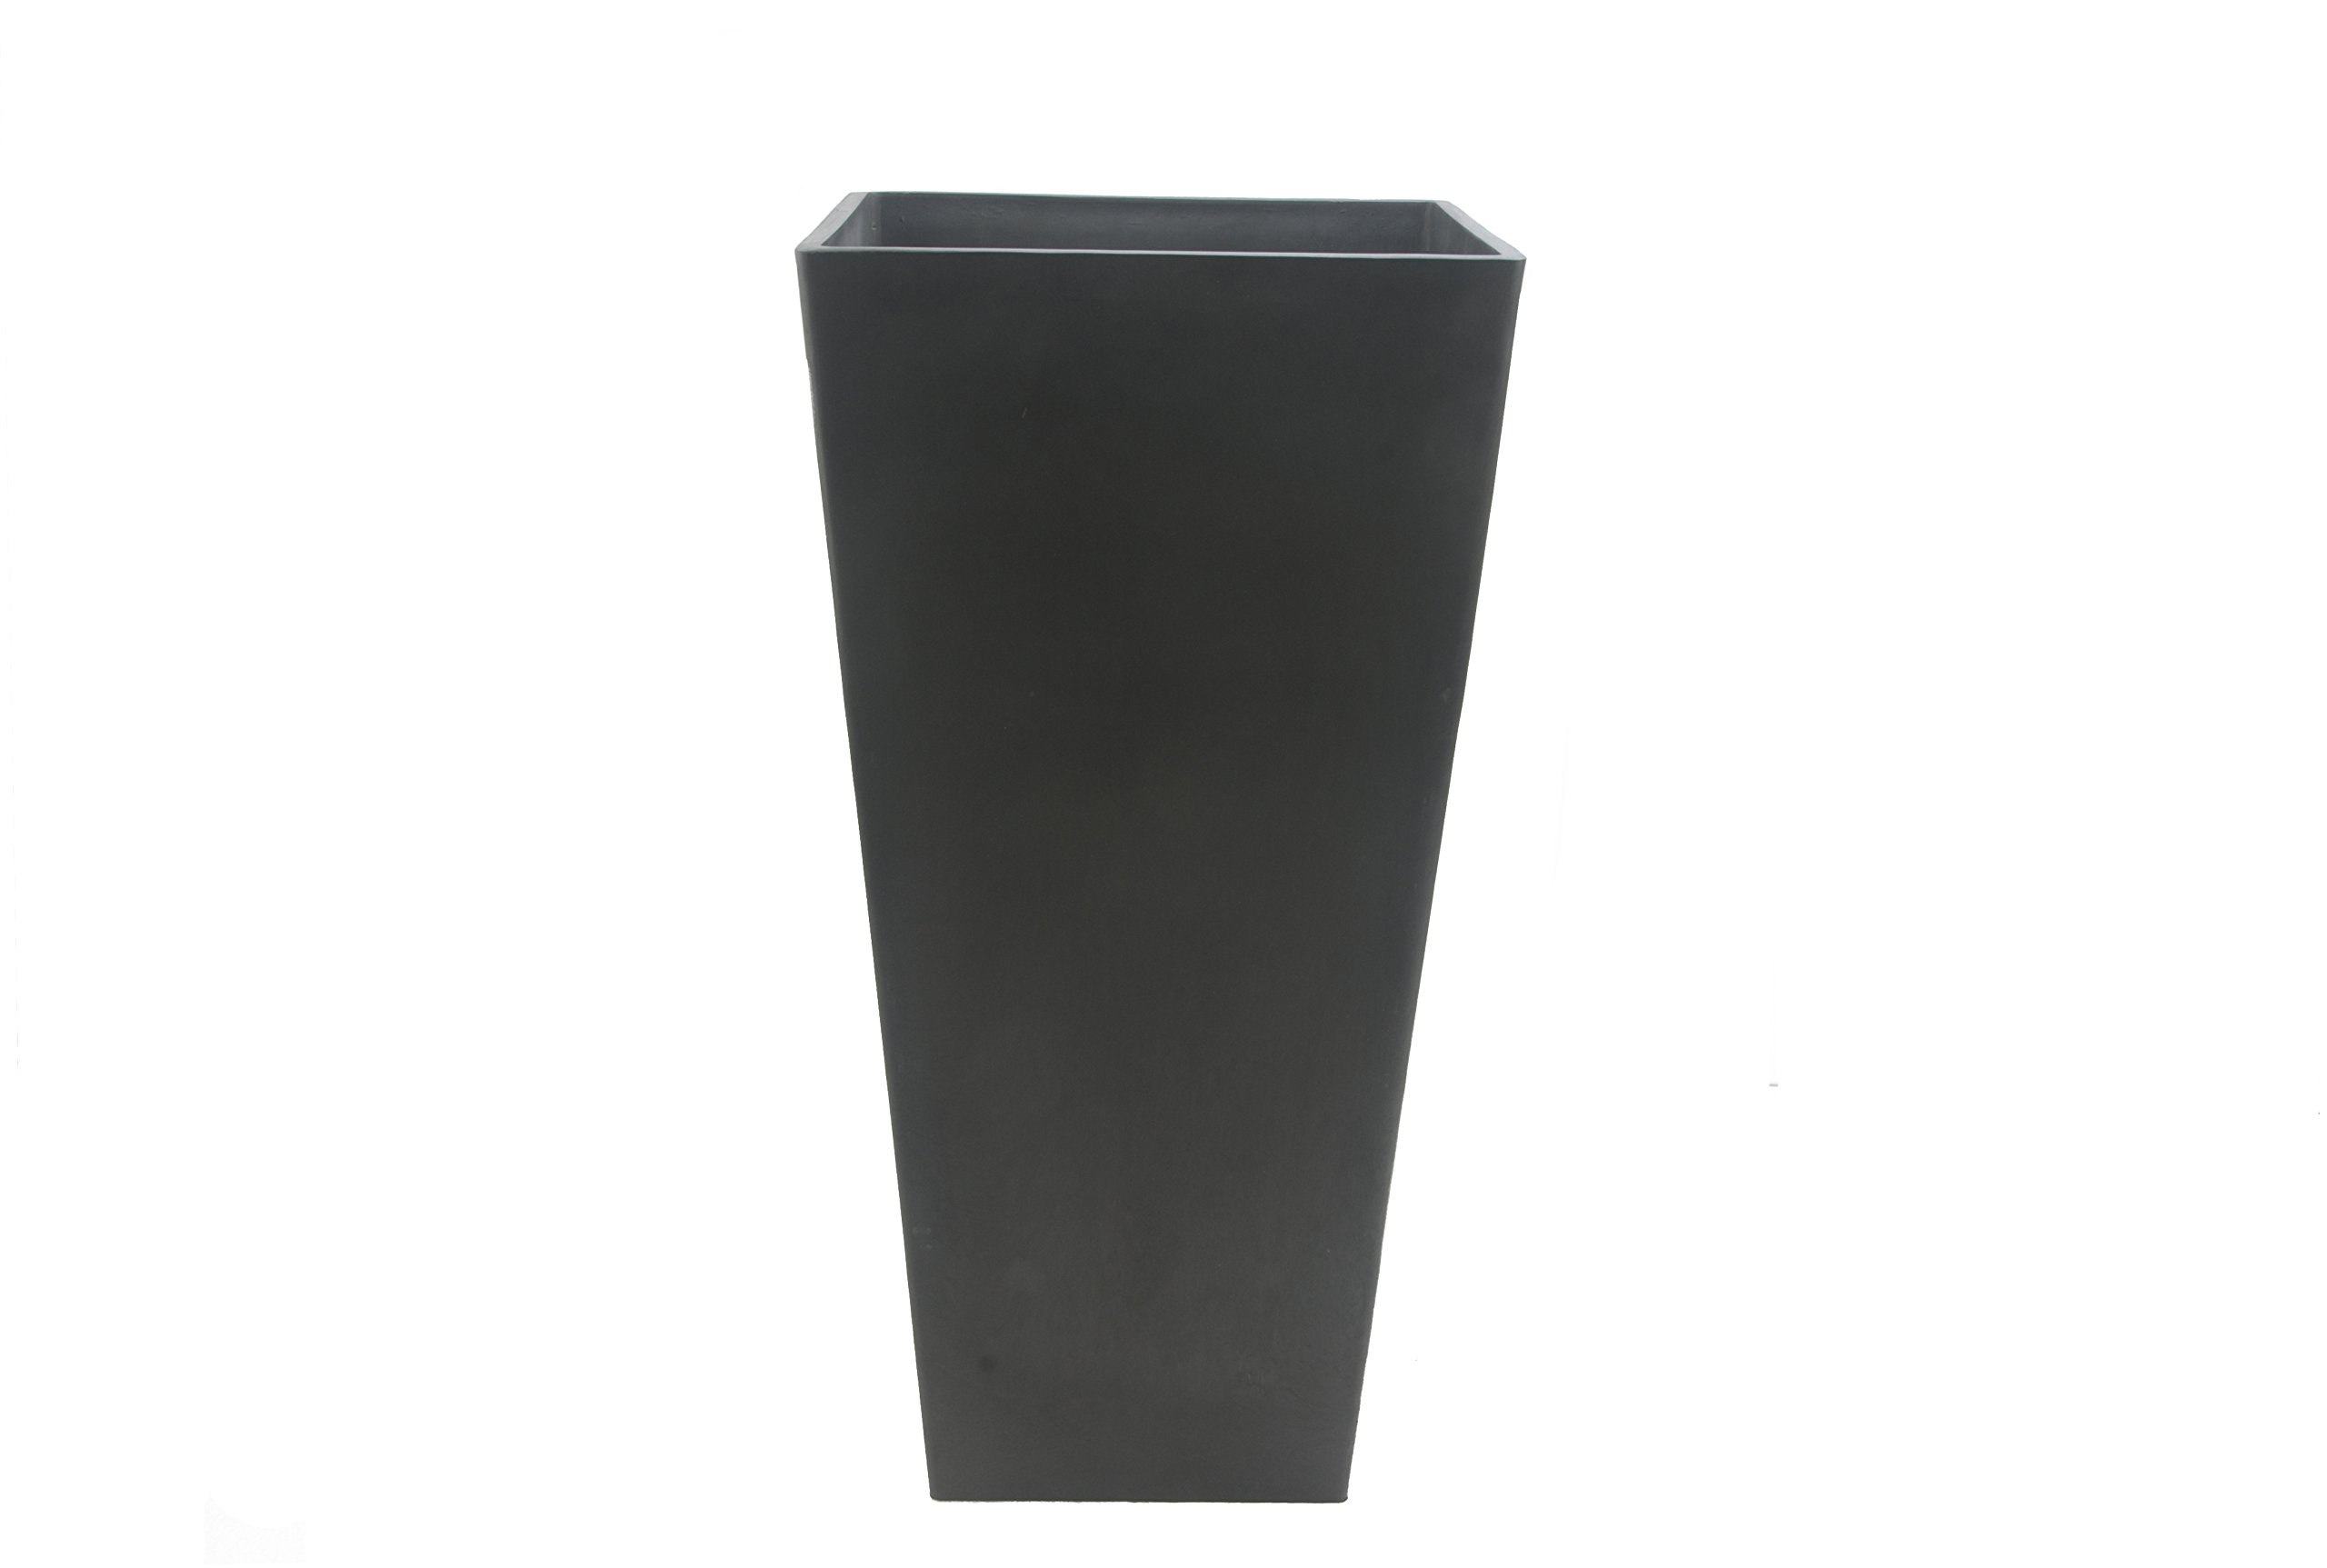 Arcadia Garden Products PSW UFH41DC Contemporary Tall Square Planter, 16 by 16 by 32'', Dark Charcoal